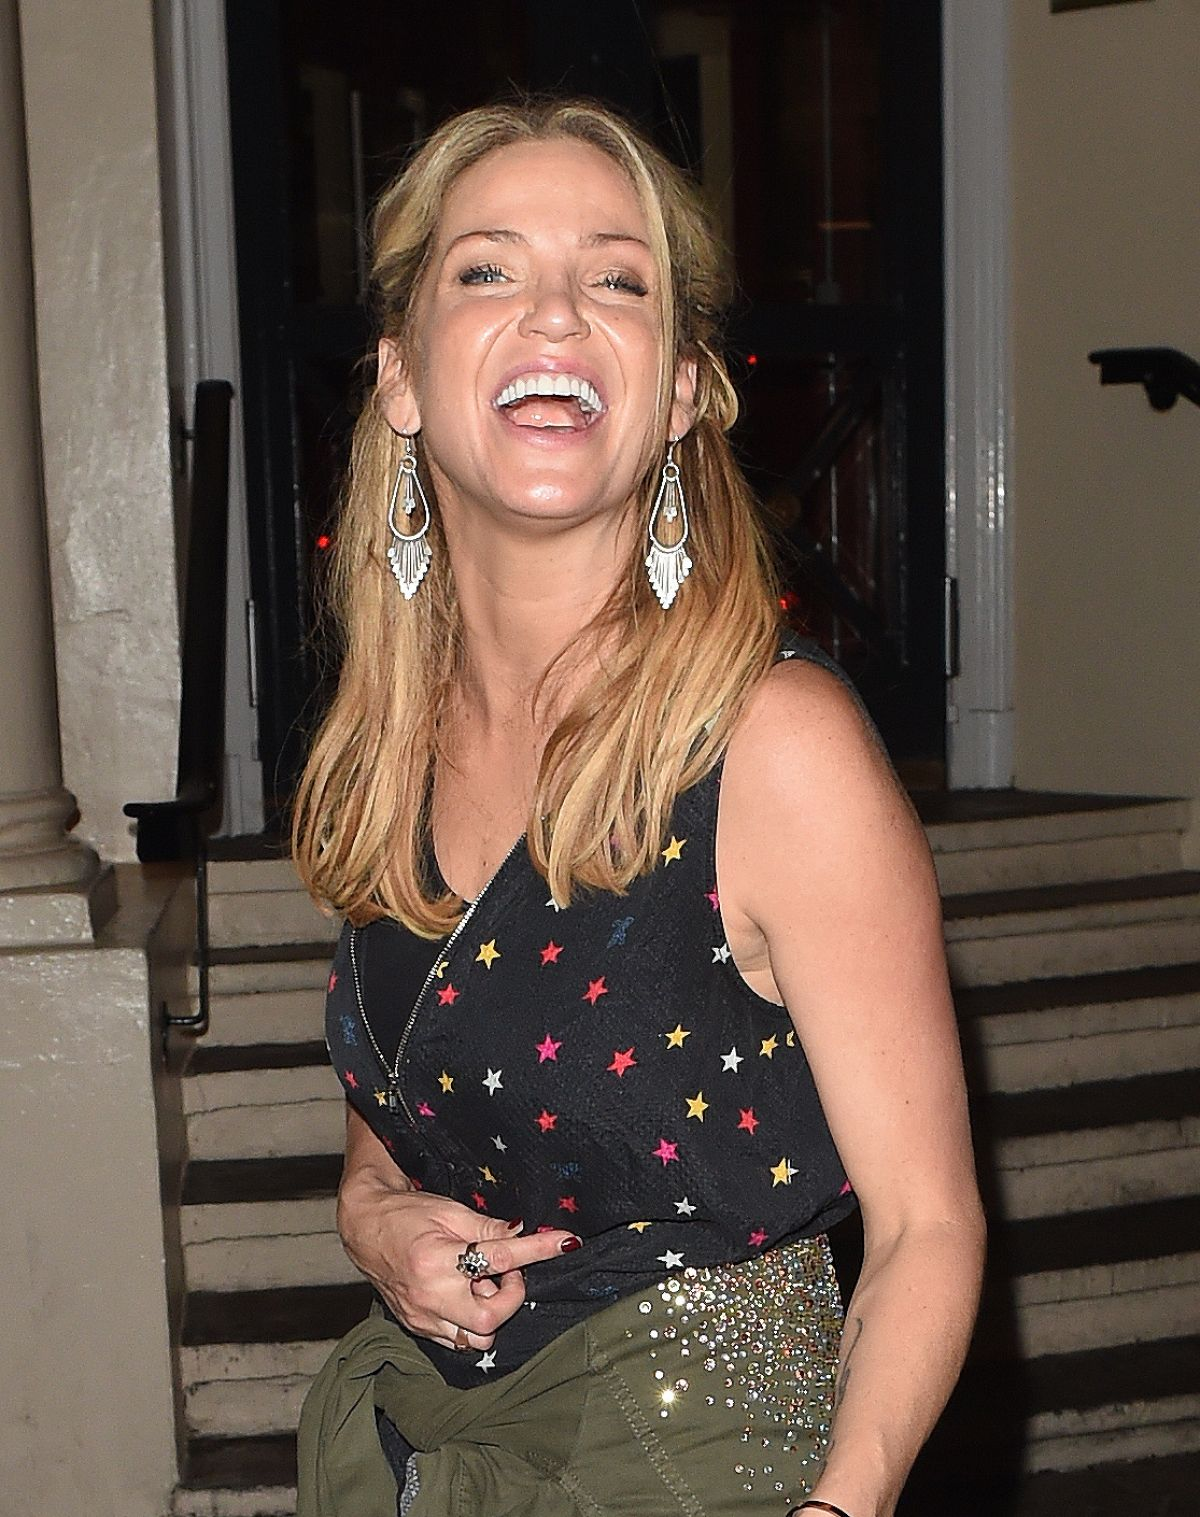 Photos of Sarah Harding out and about in night, London